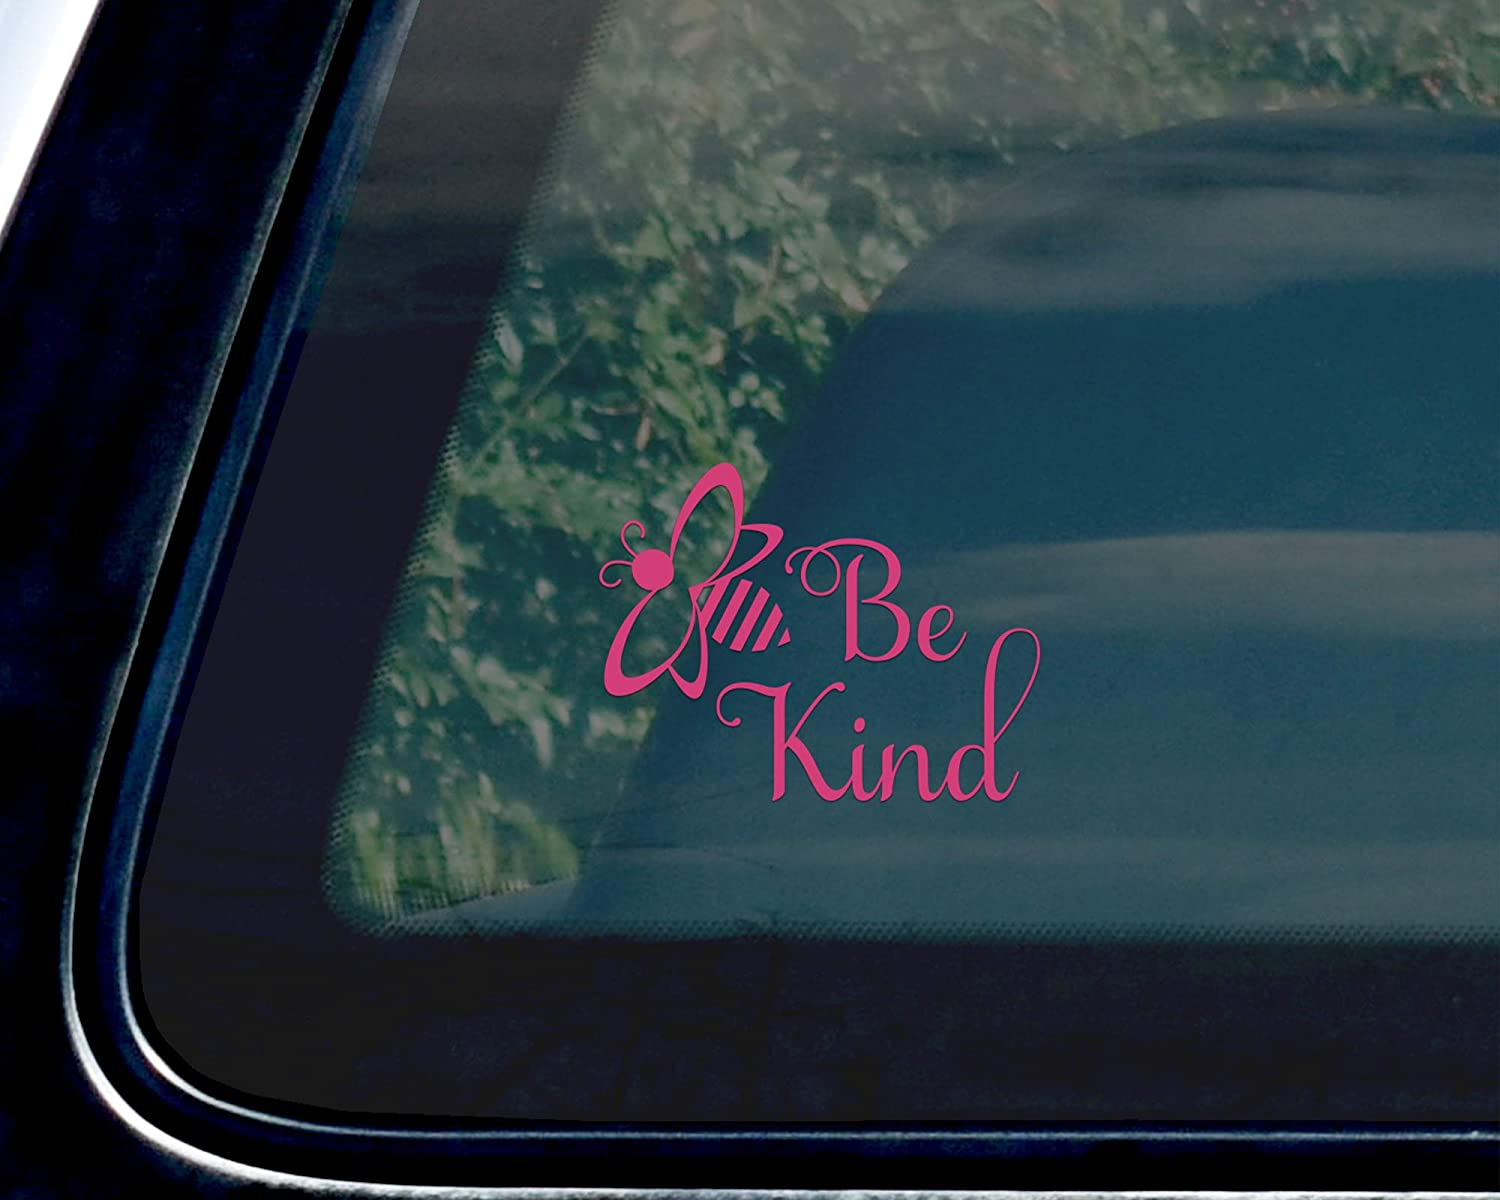 Pink Bee Be Kind Vinyl Car Decal Vehicle Bumper Sticker 5 x 4 inches